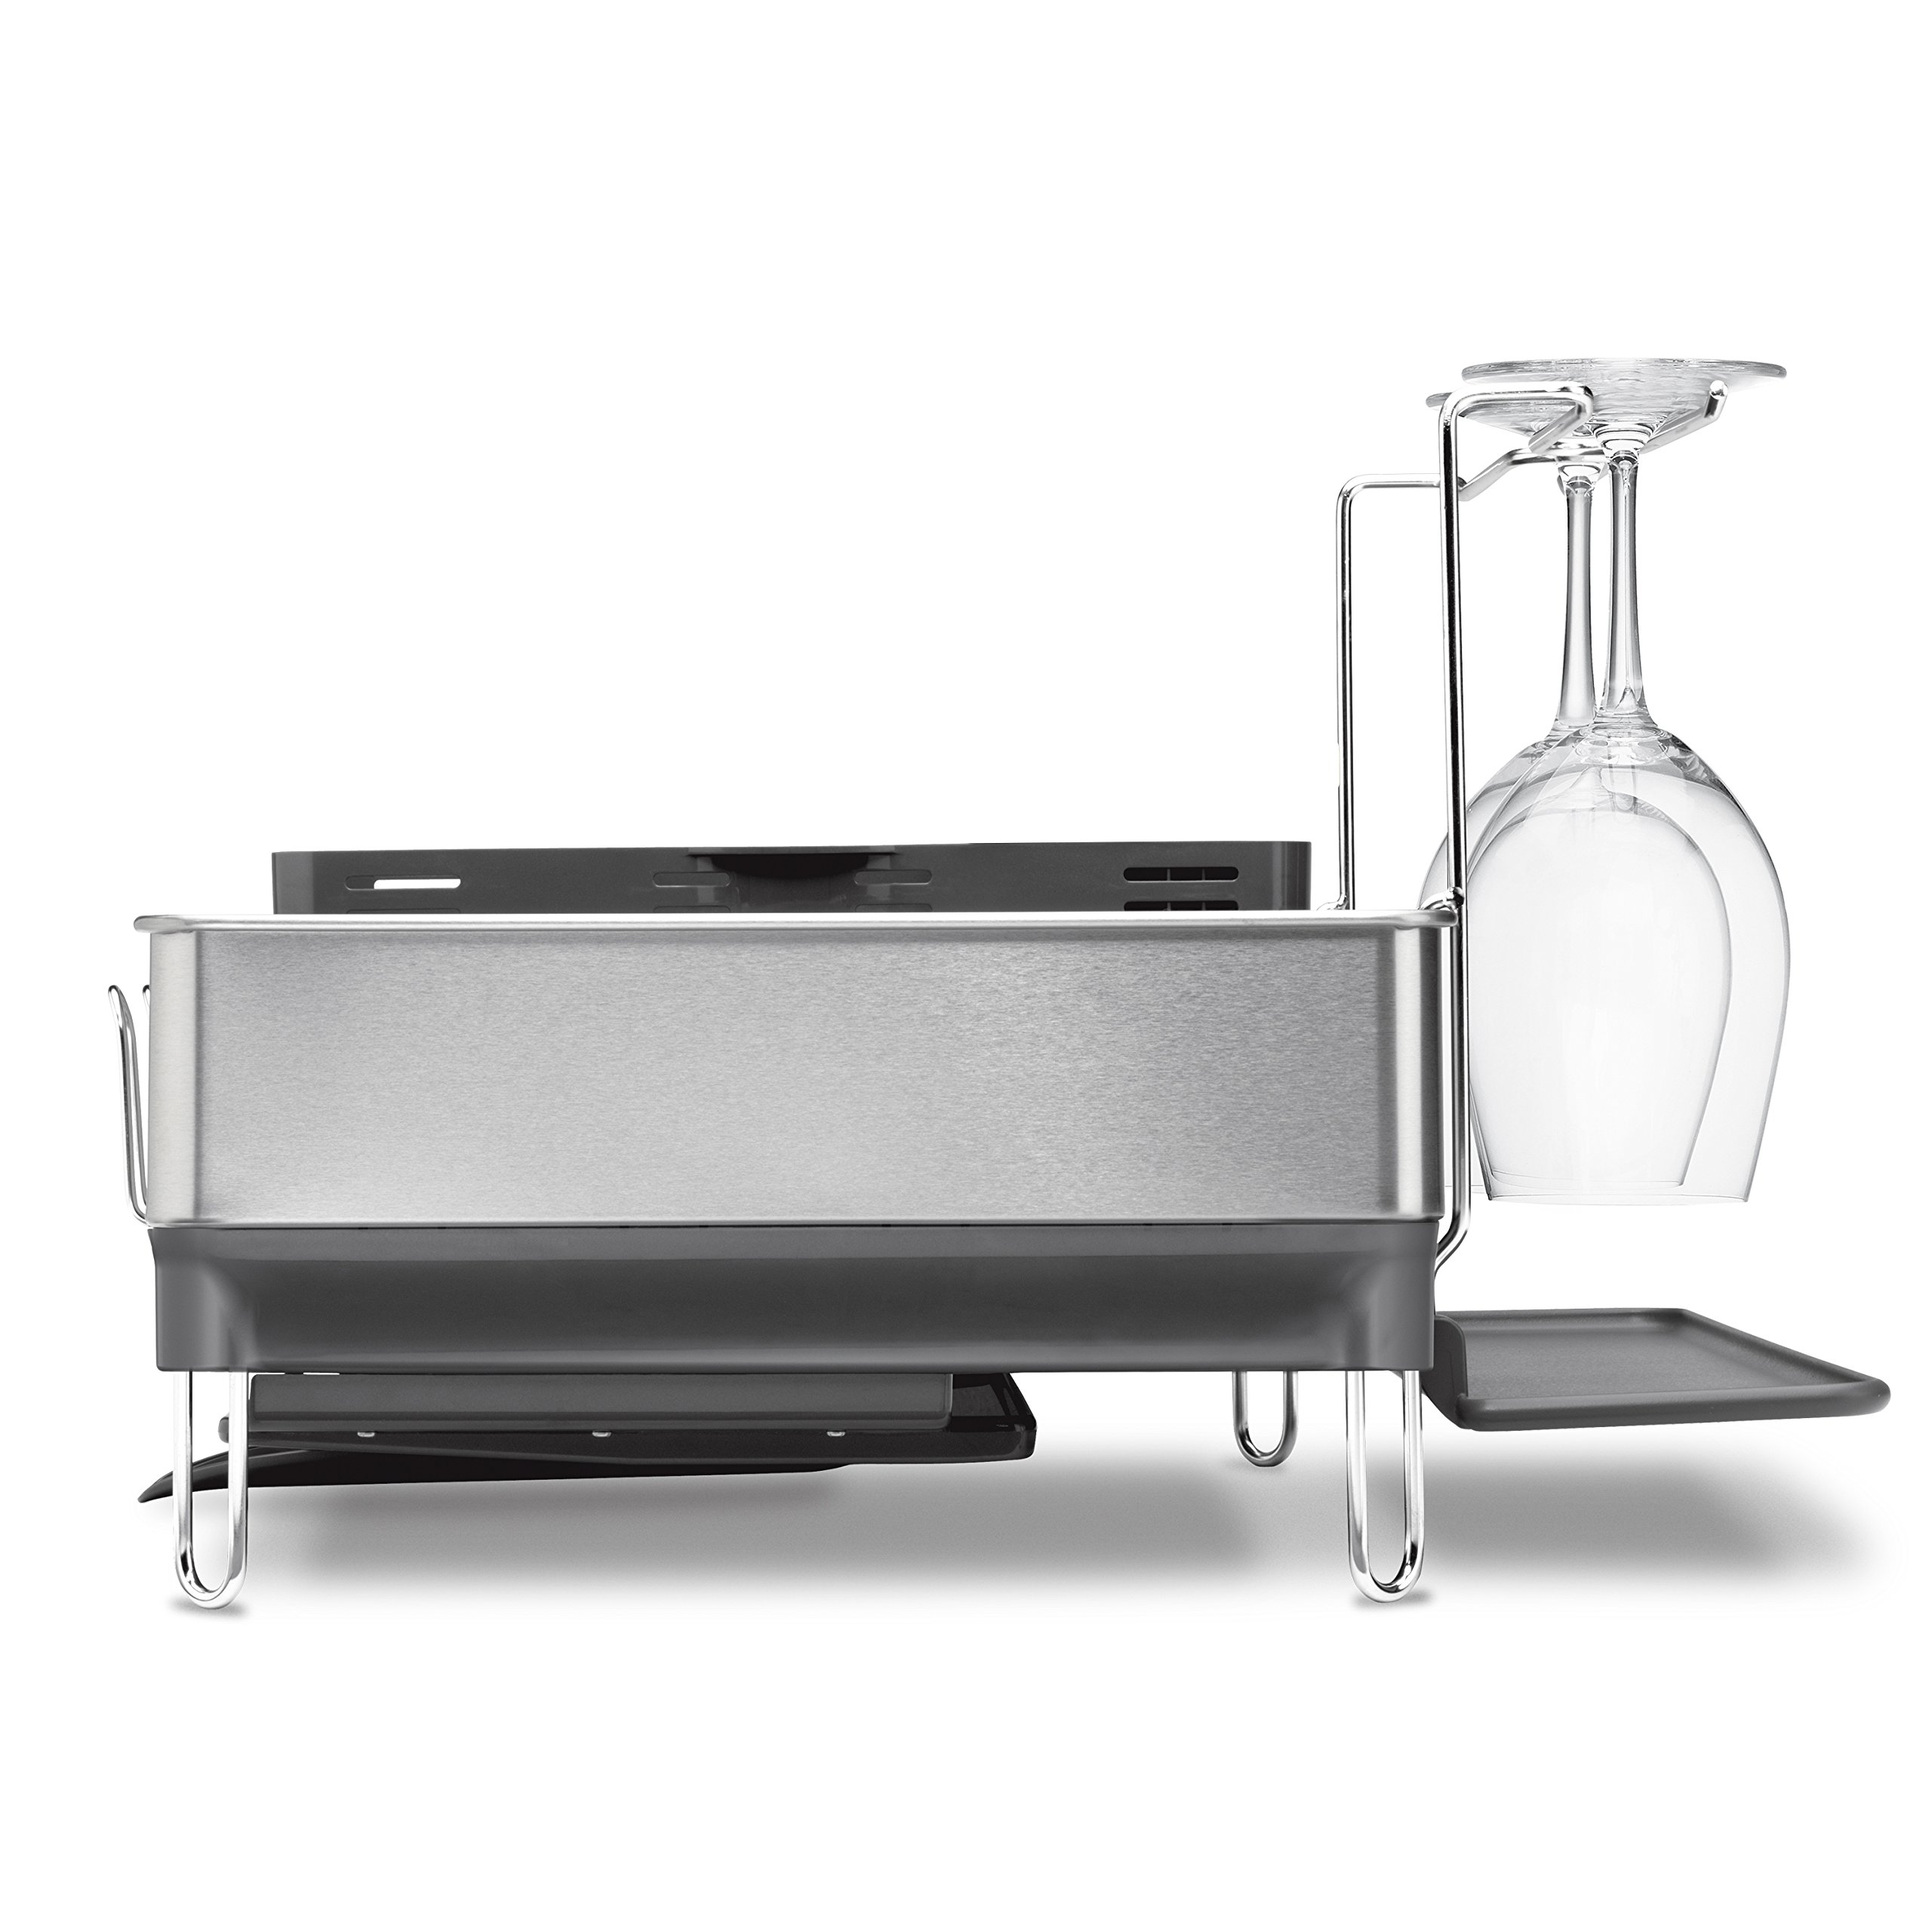 simplehuman Kitchen Steel Frame Dish Rack With Swivel Spout, Fingerprint-Proof Stainless Steel Frame, Grey Plastic by simplehuman (Image #2)